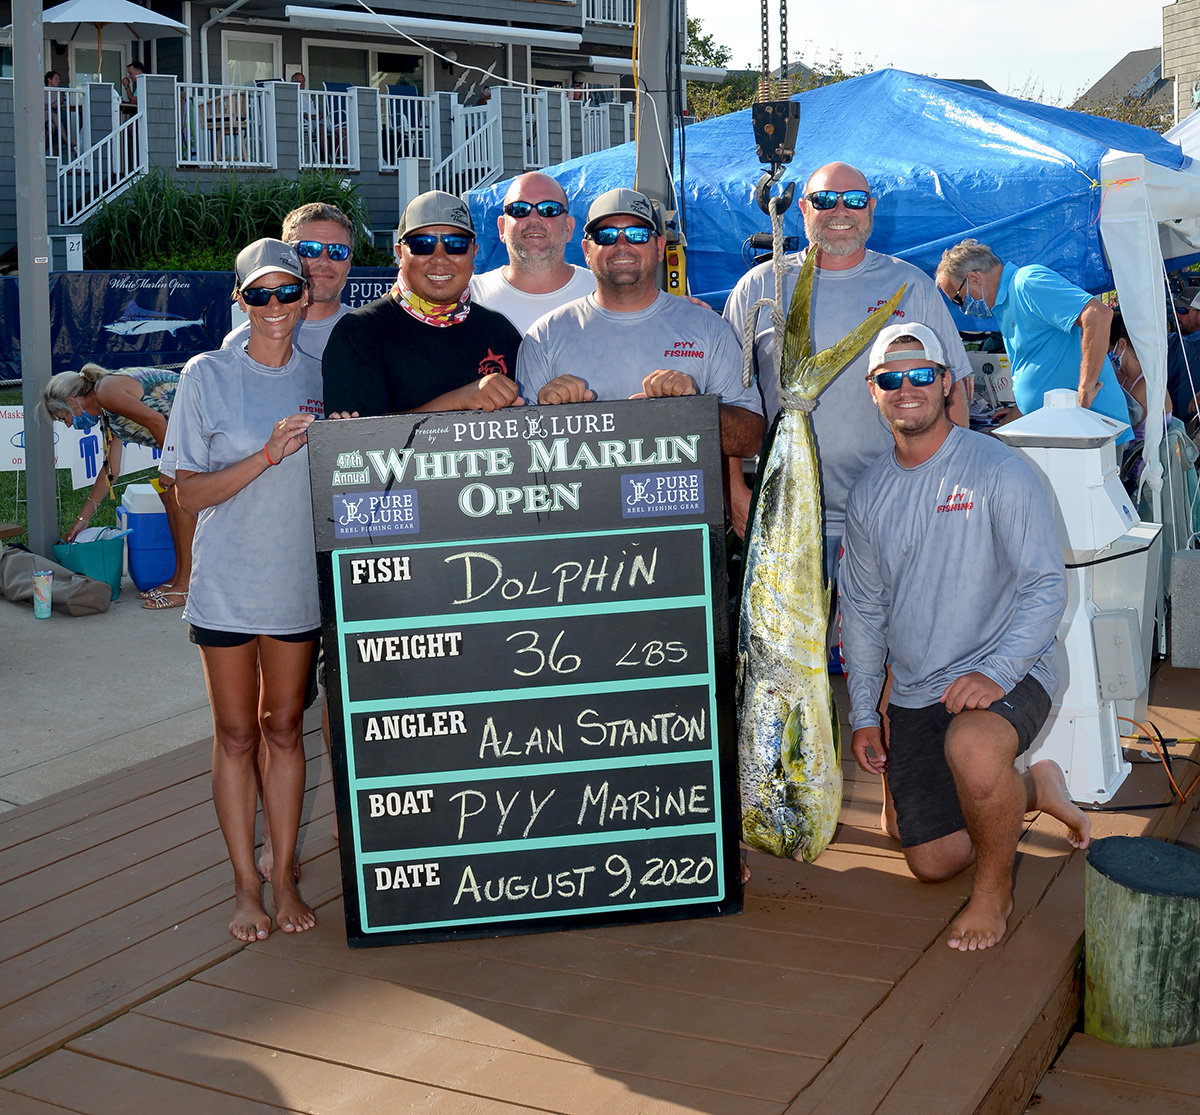 The PYY Fishing team posed with the 36-pound fish that won them the Small Boat Dolphin category at the 2020 White Marlin Open in Ocean City.